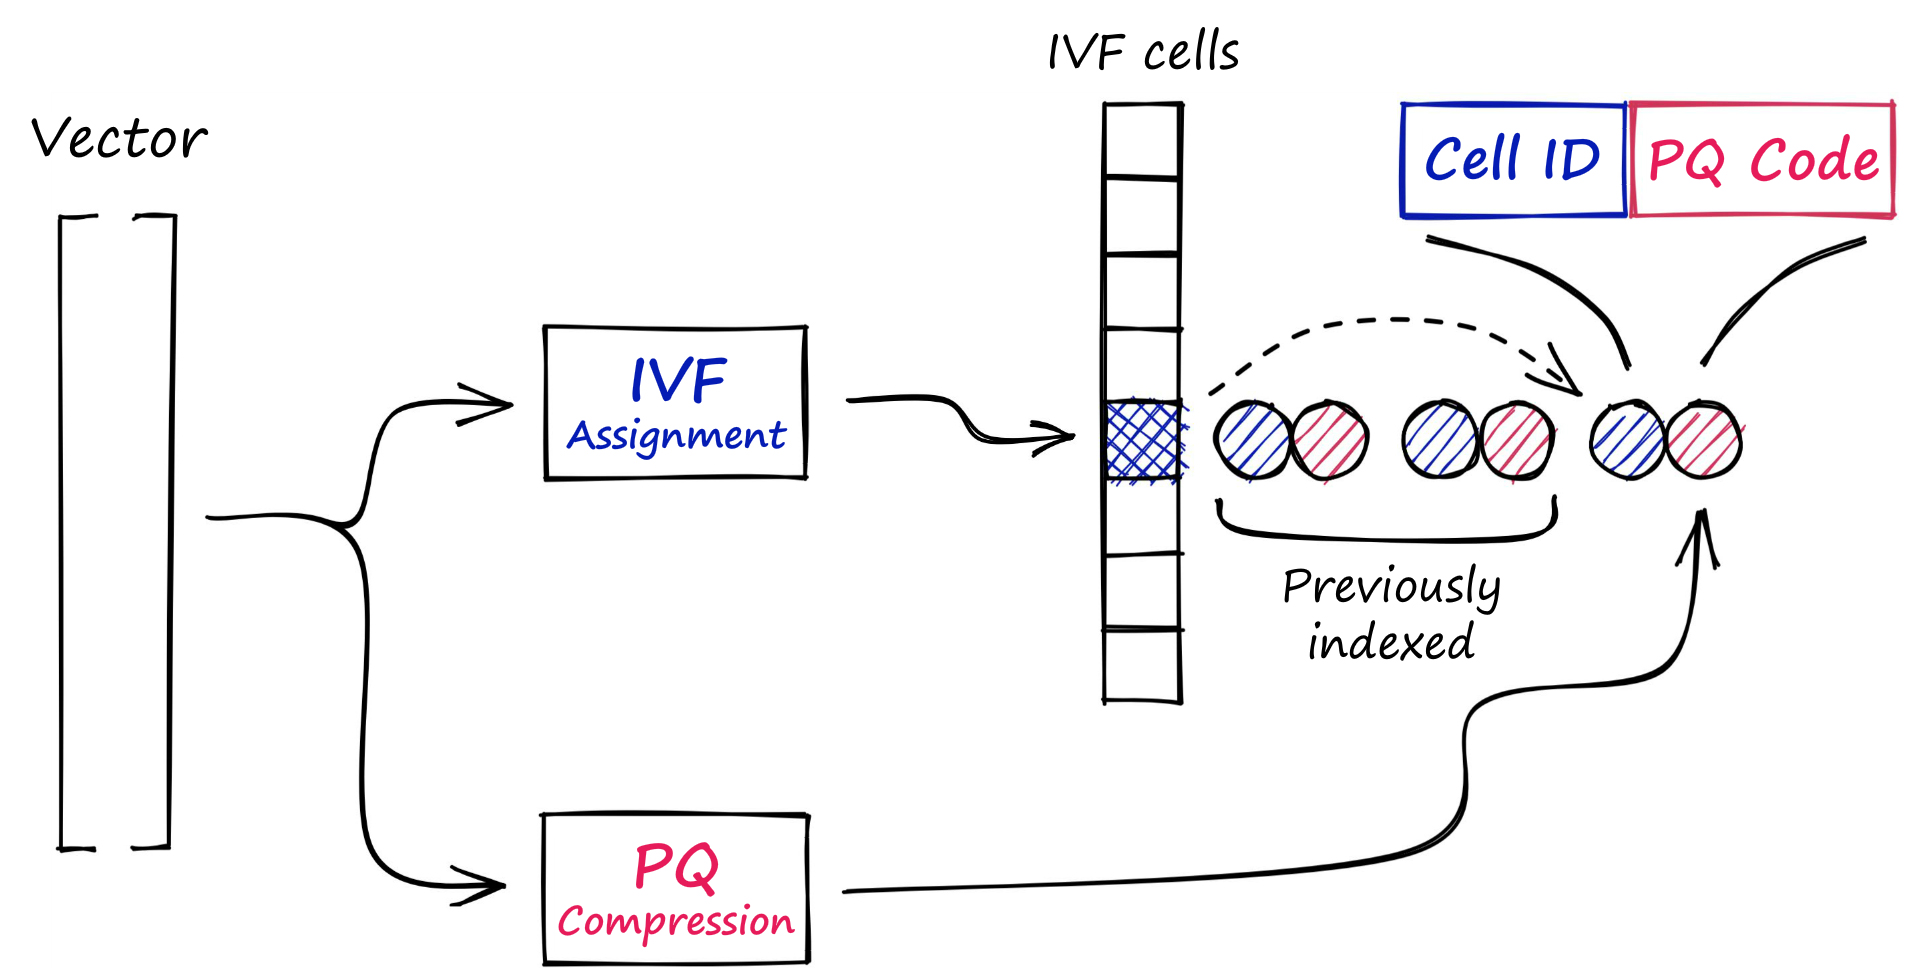 Indexing process for IVFADC